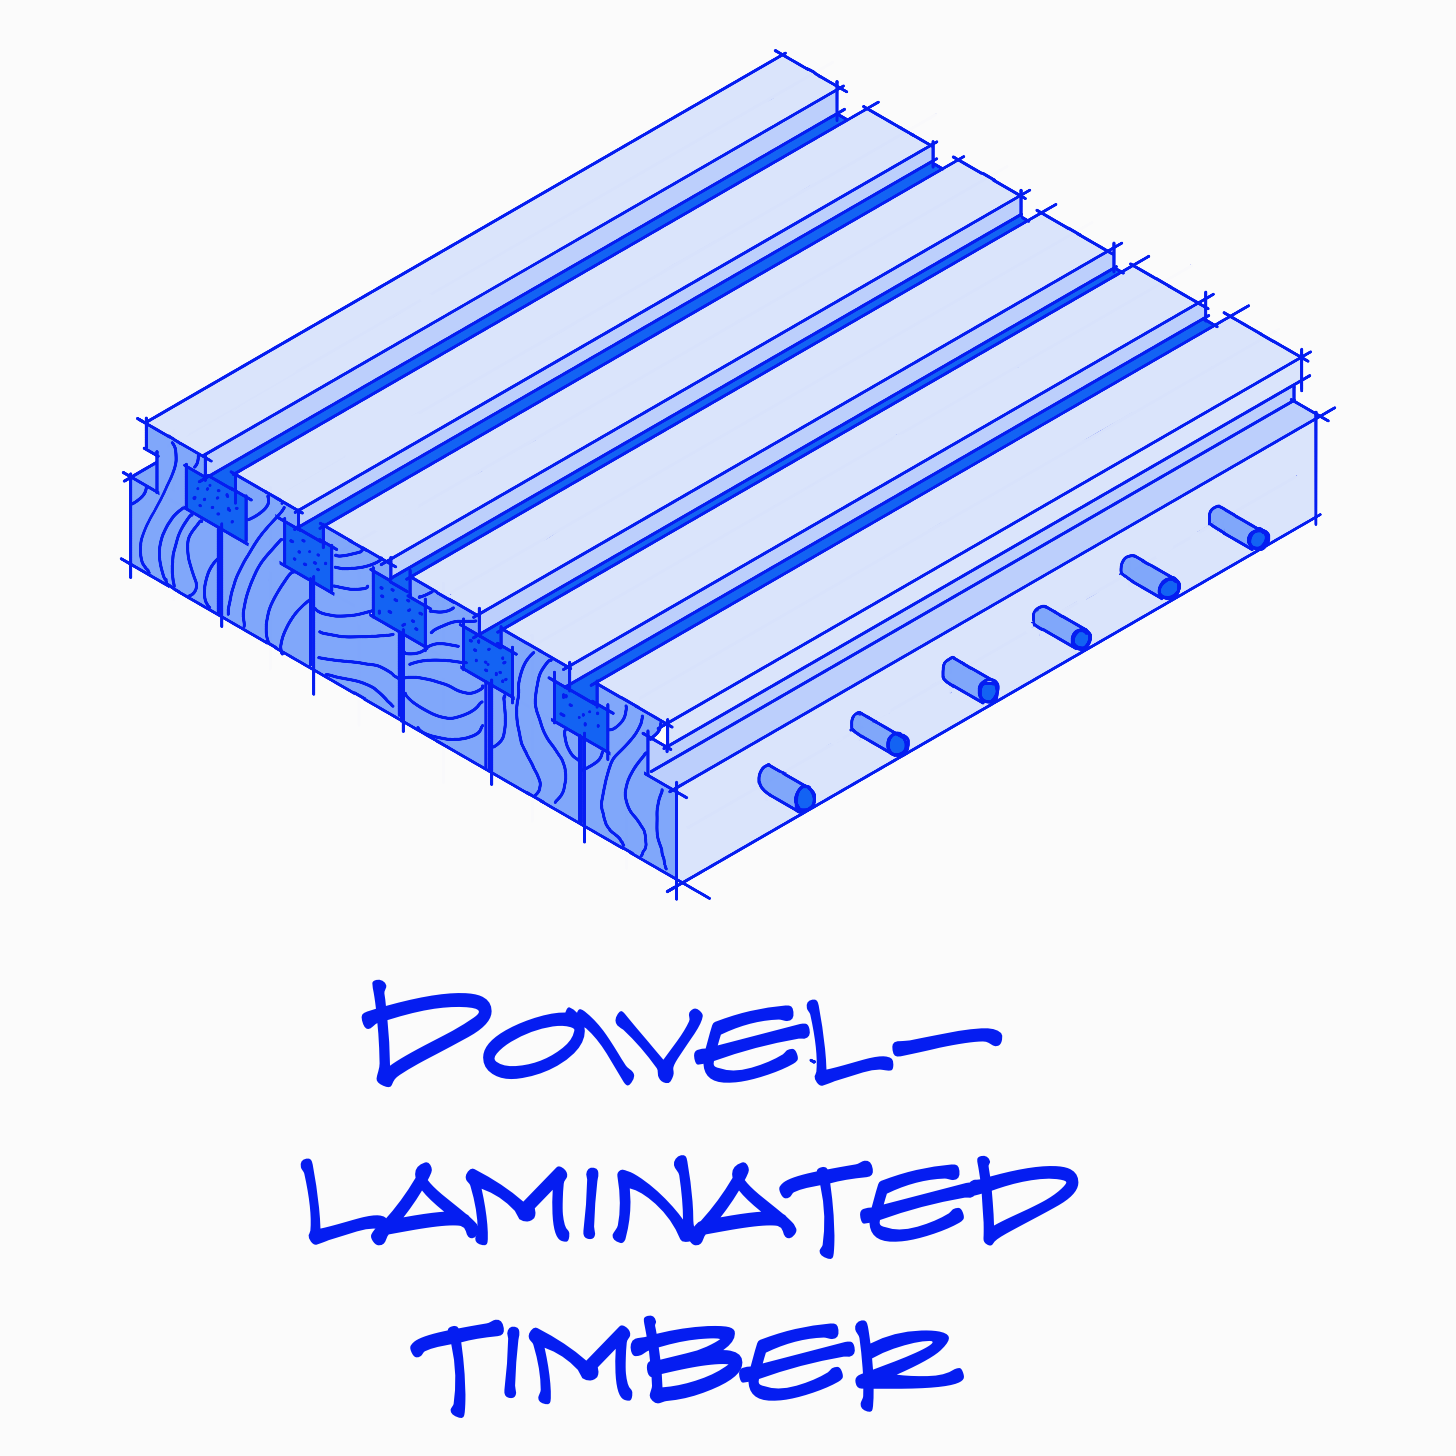 Dowel-Laminated Timber